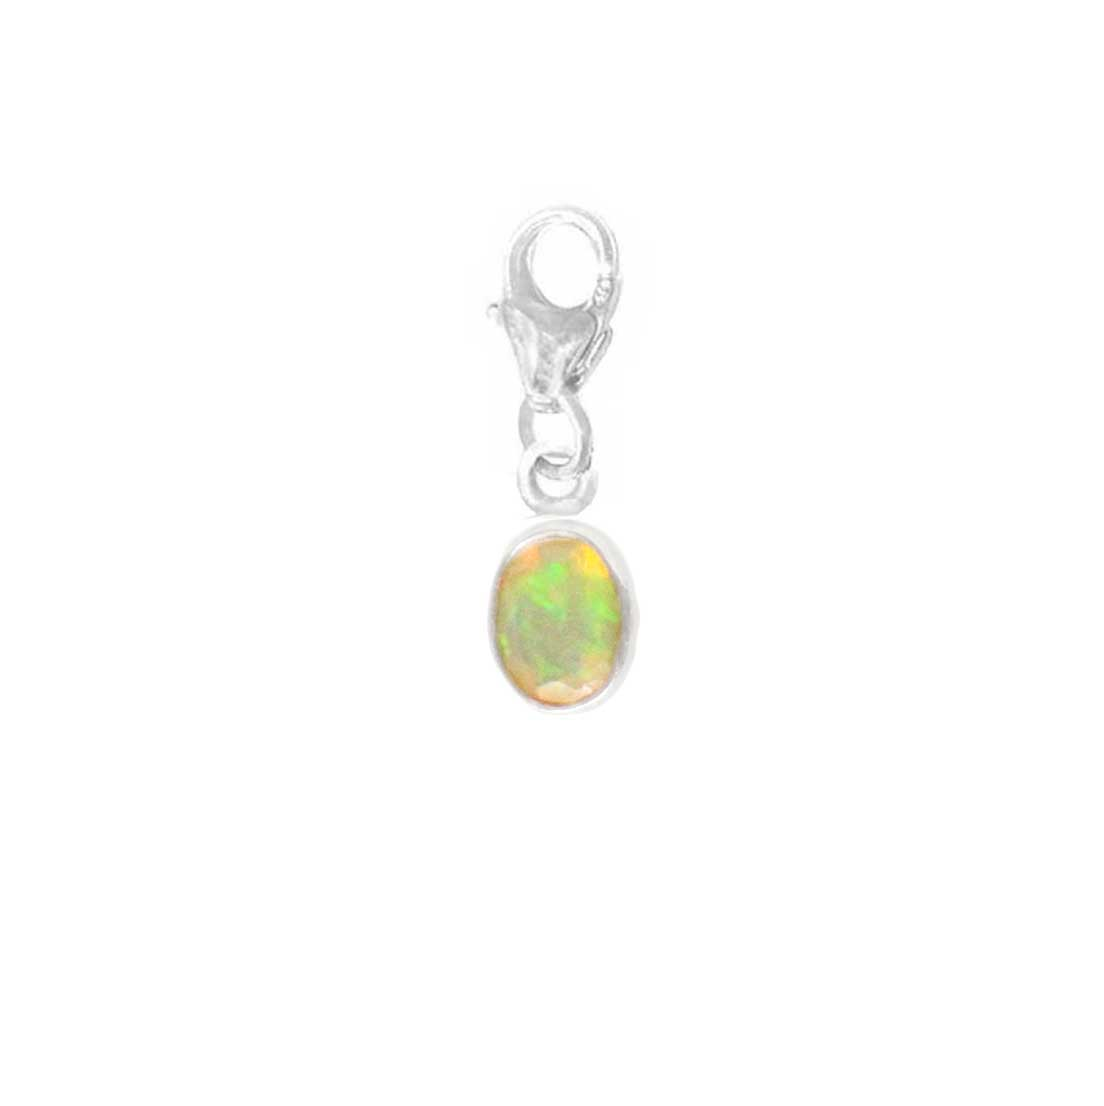 925 Silver Charm Series - Oval 7x5mm (Opal)